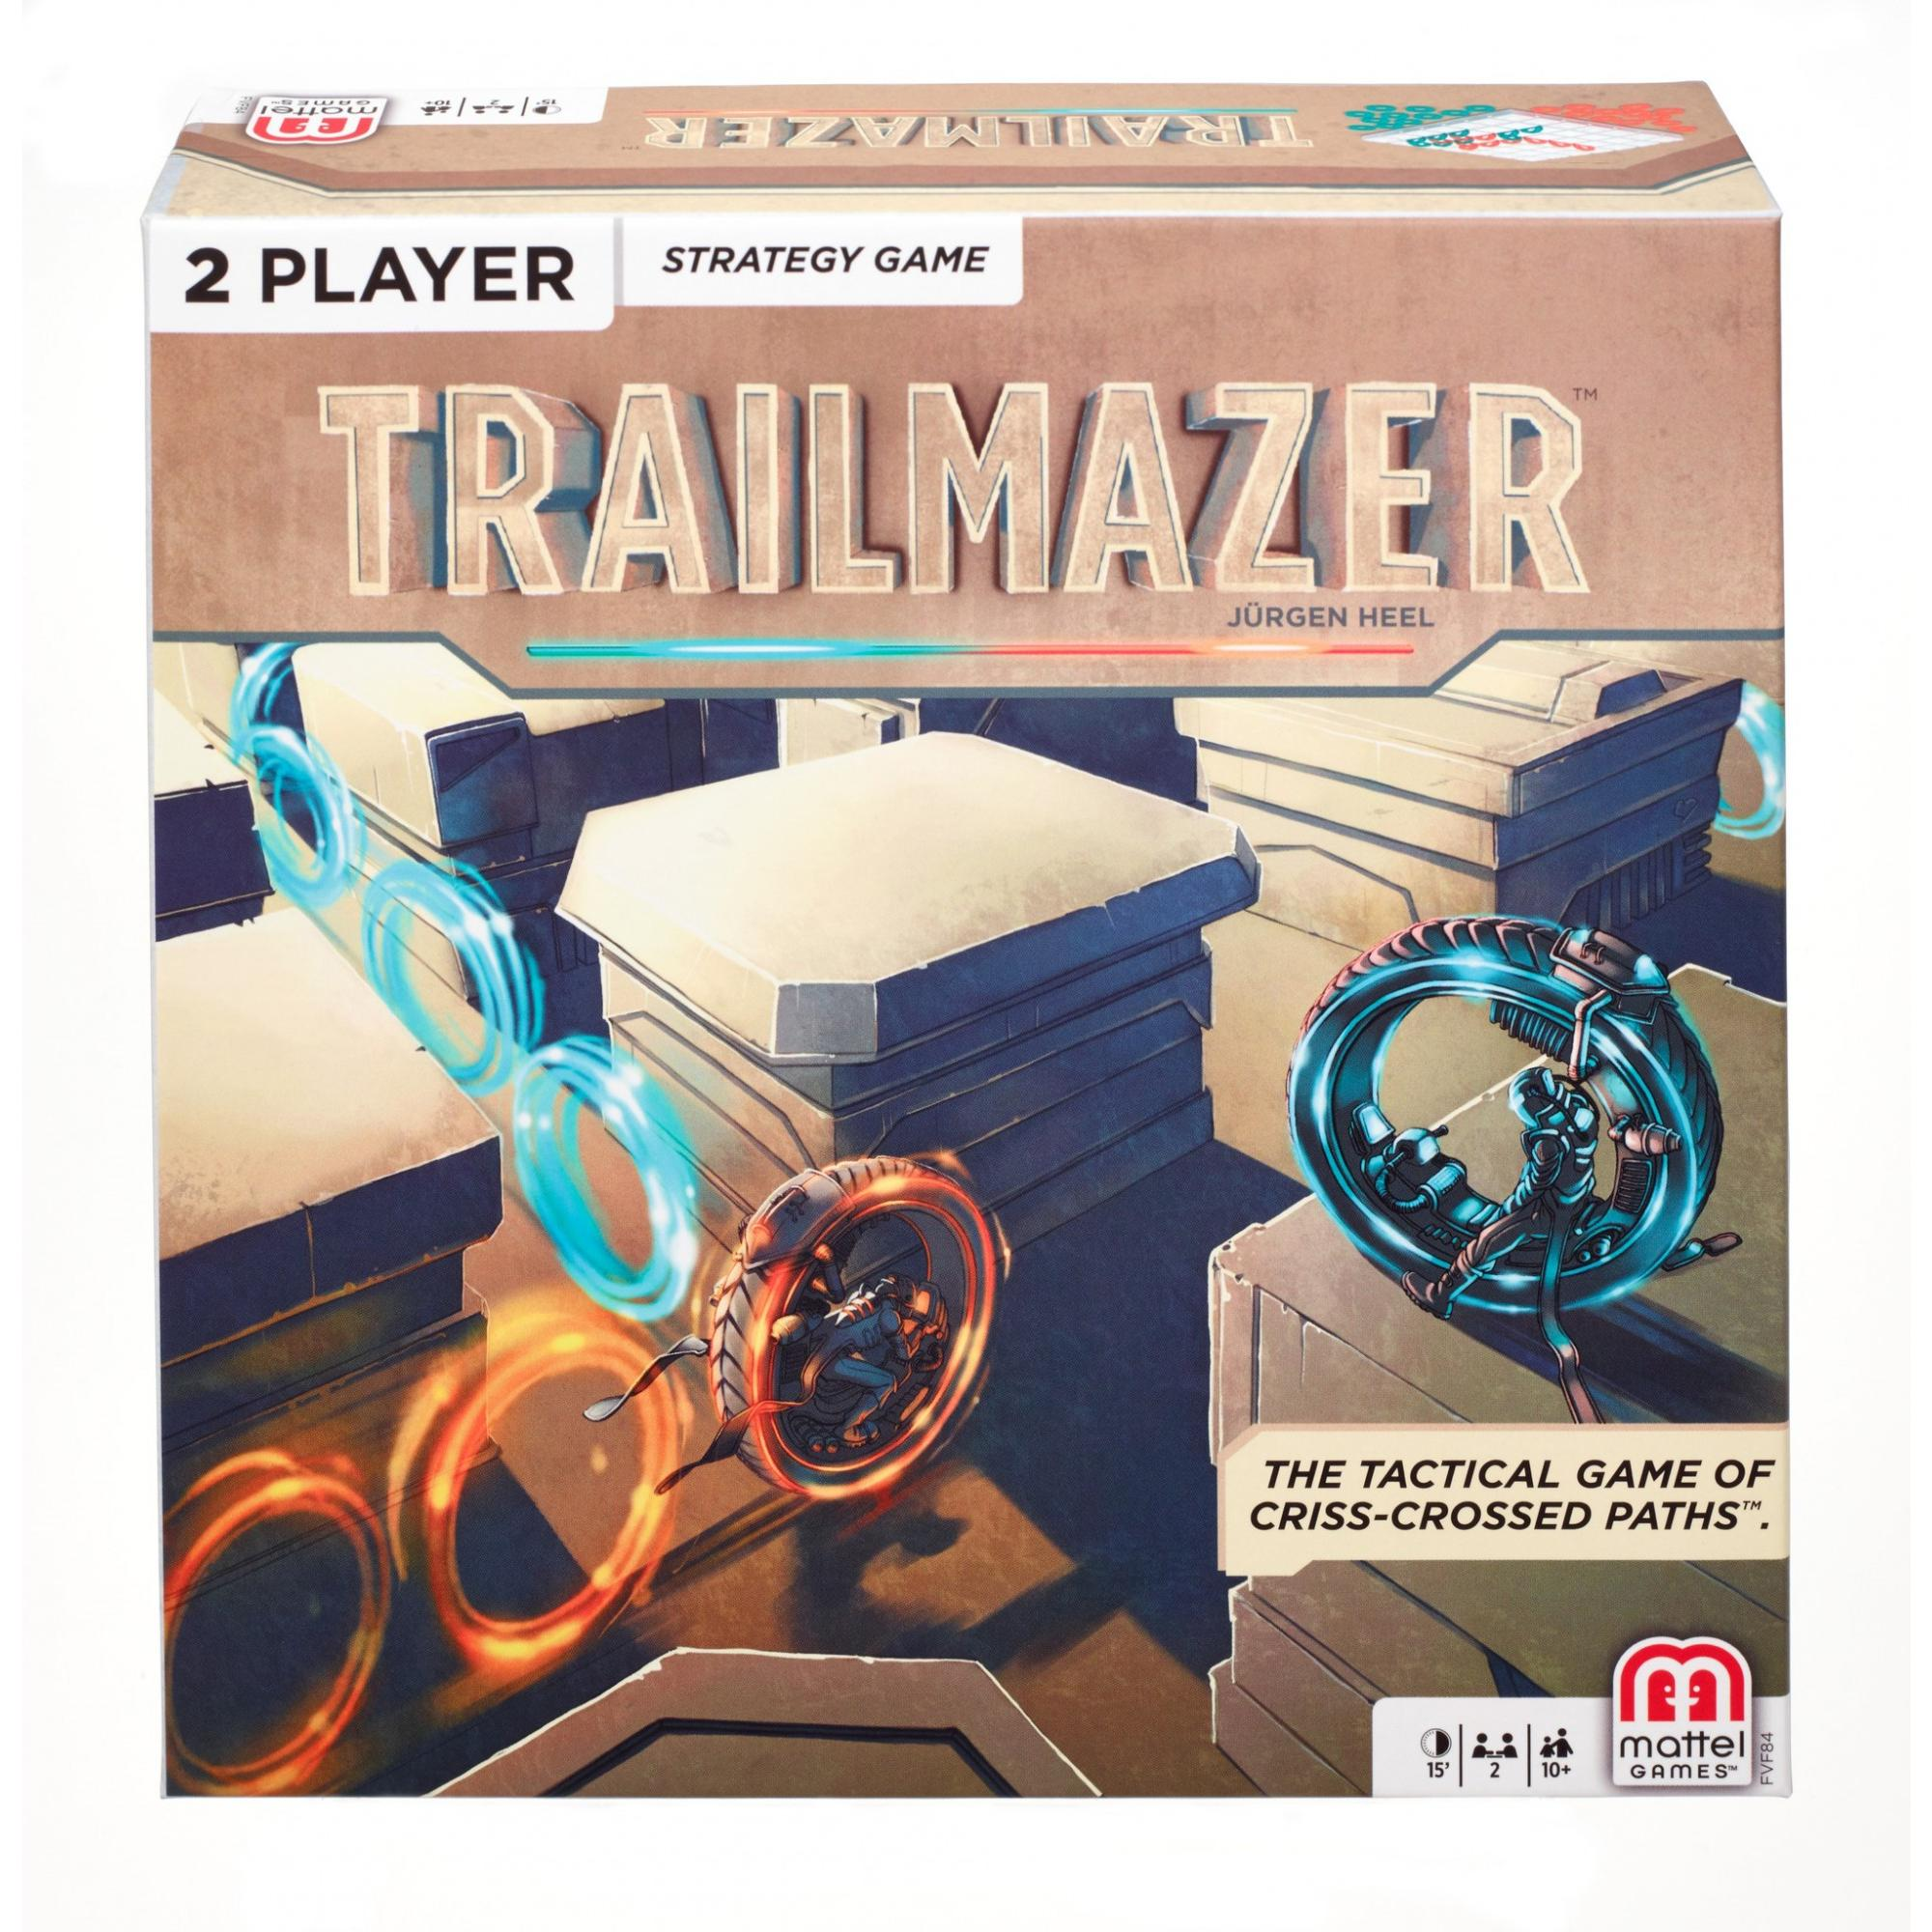 Trailmazer Fast-Paced Strategy Game for 2 Players Ages 10Y+